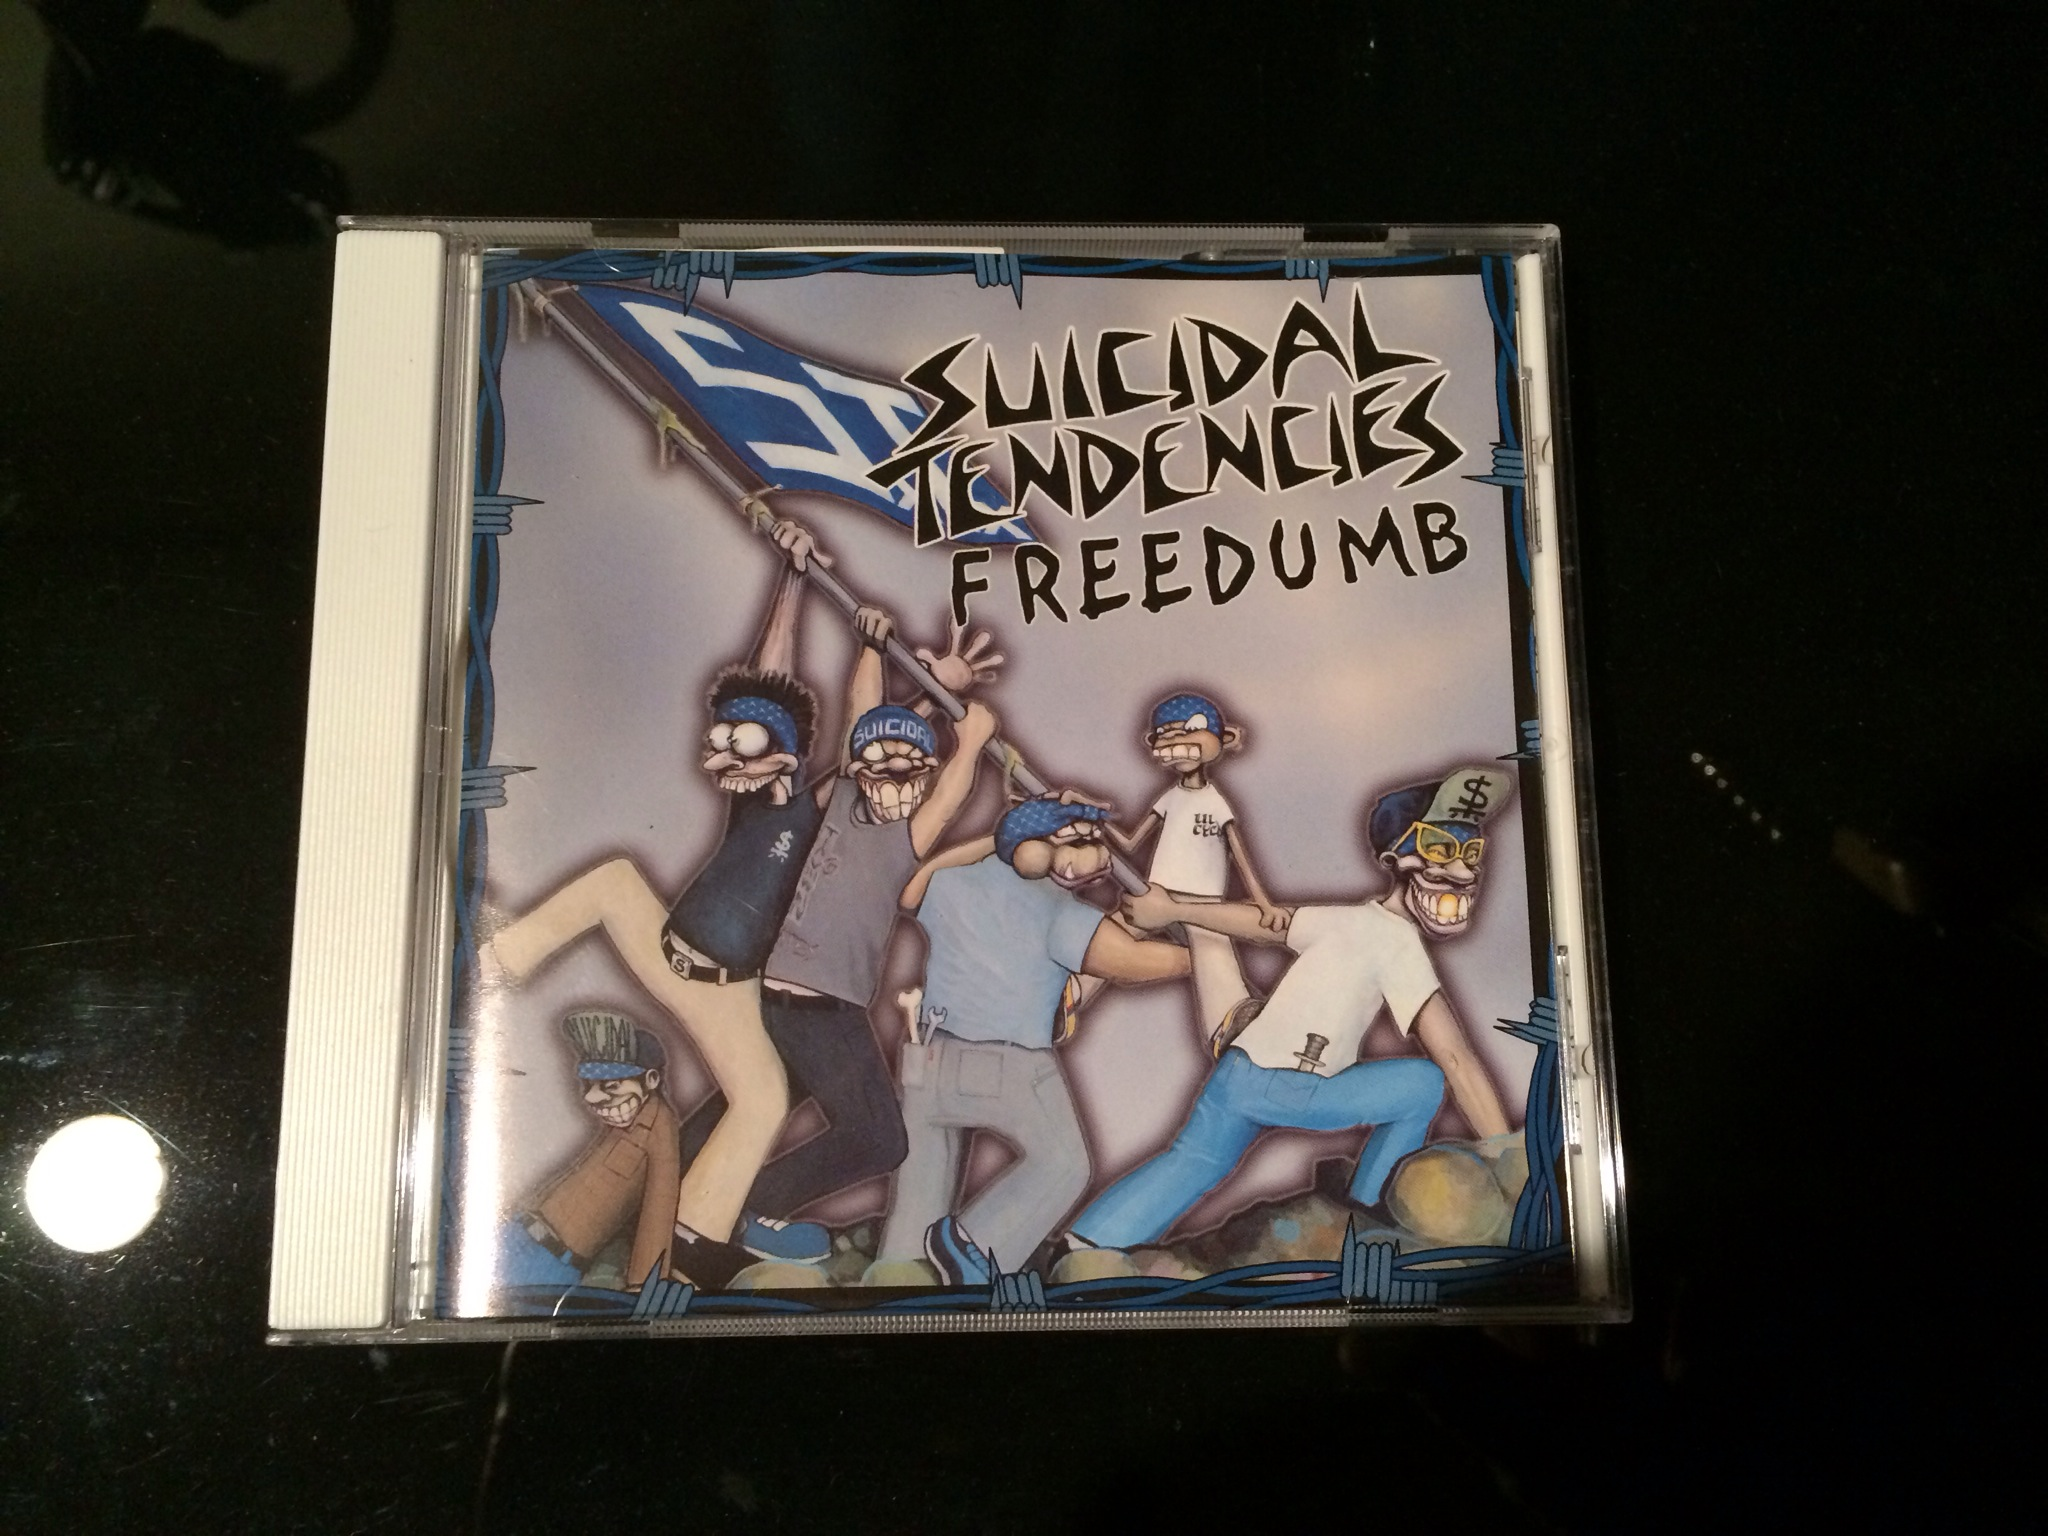 suicidal tendencies/freedumb